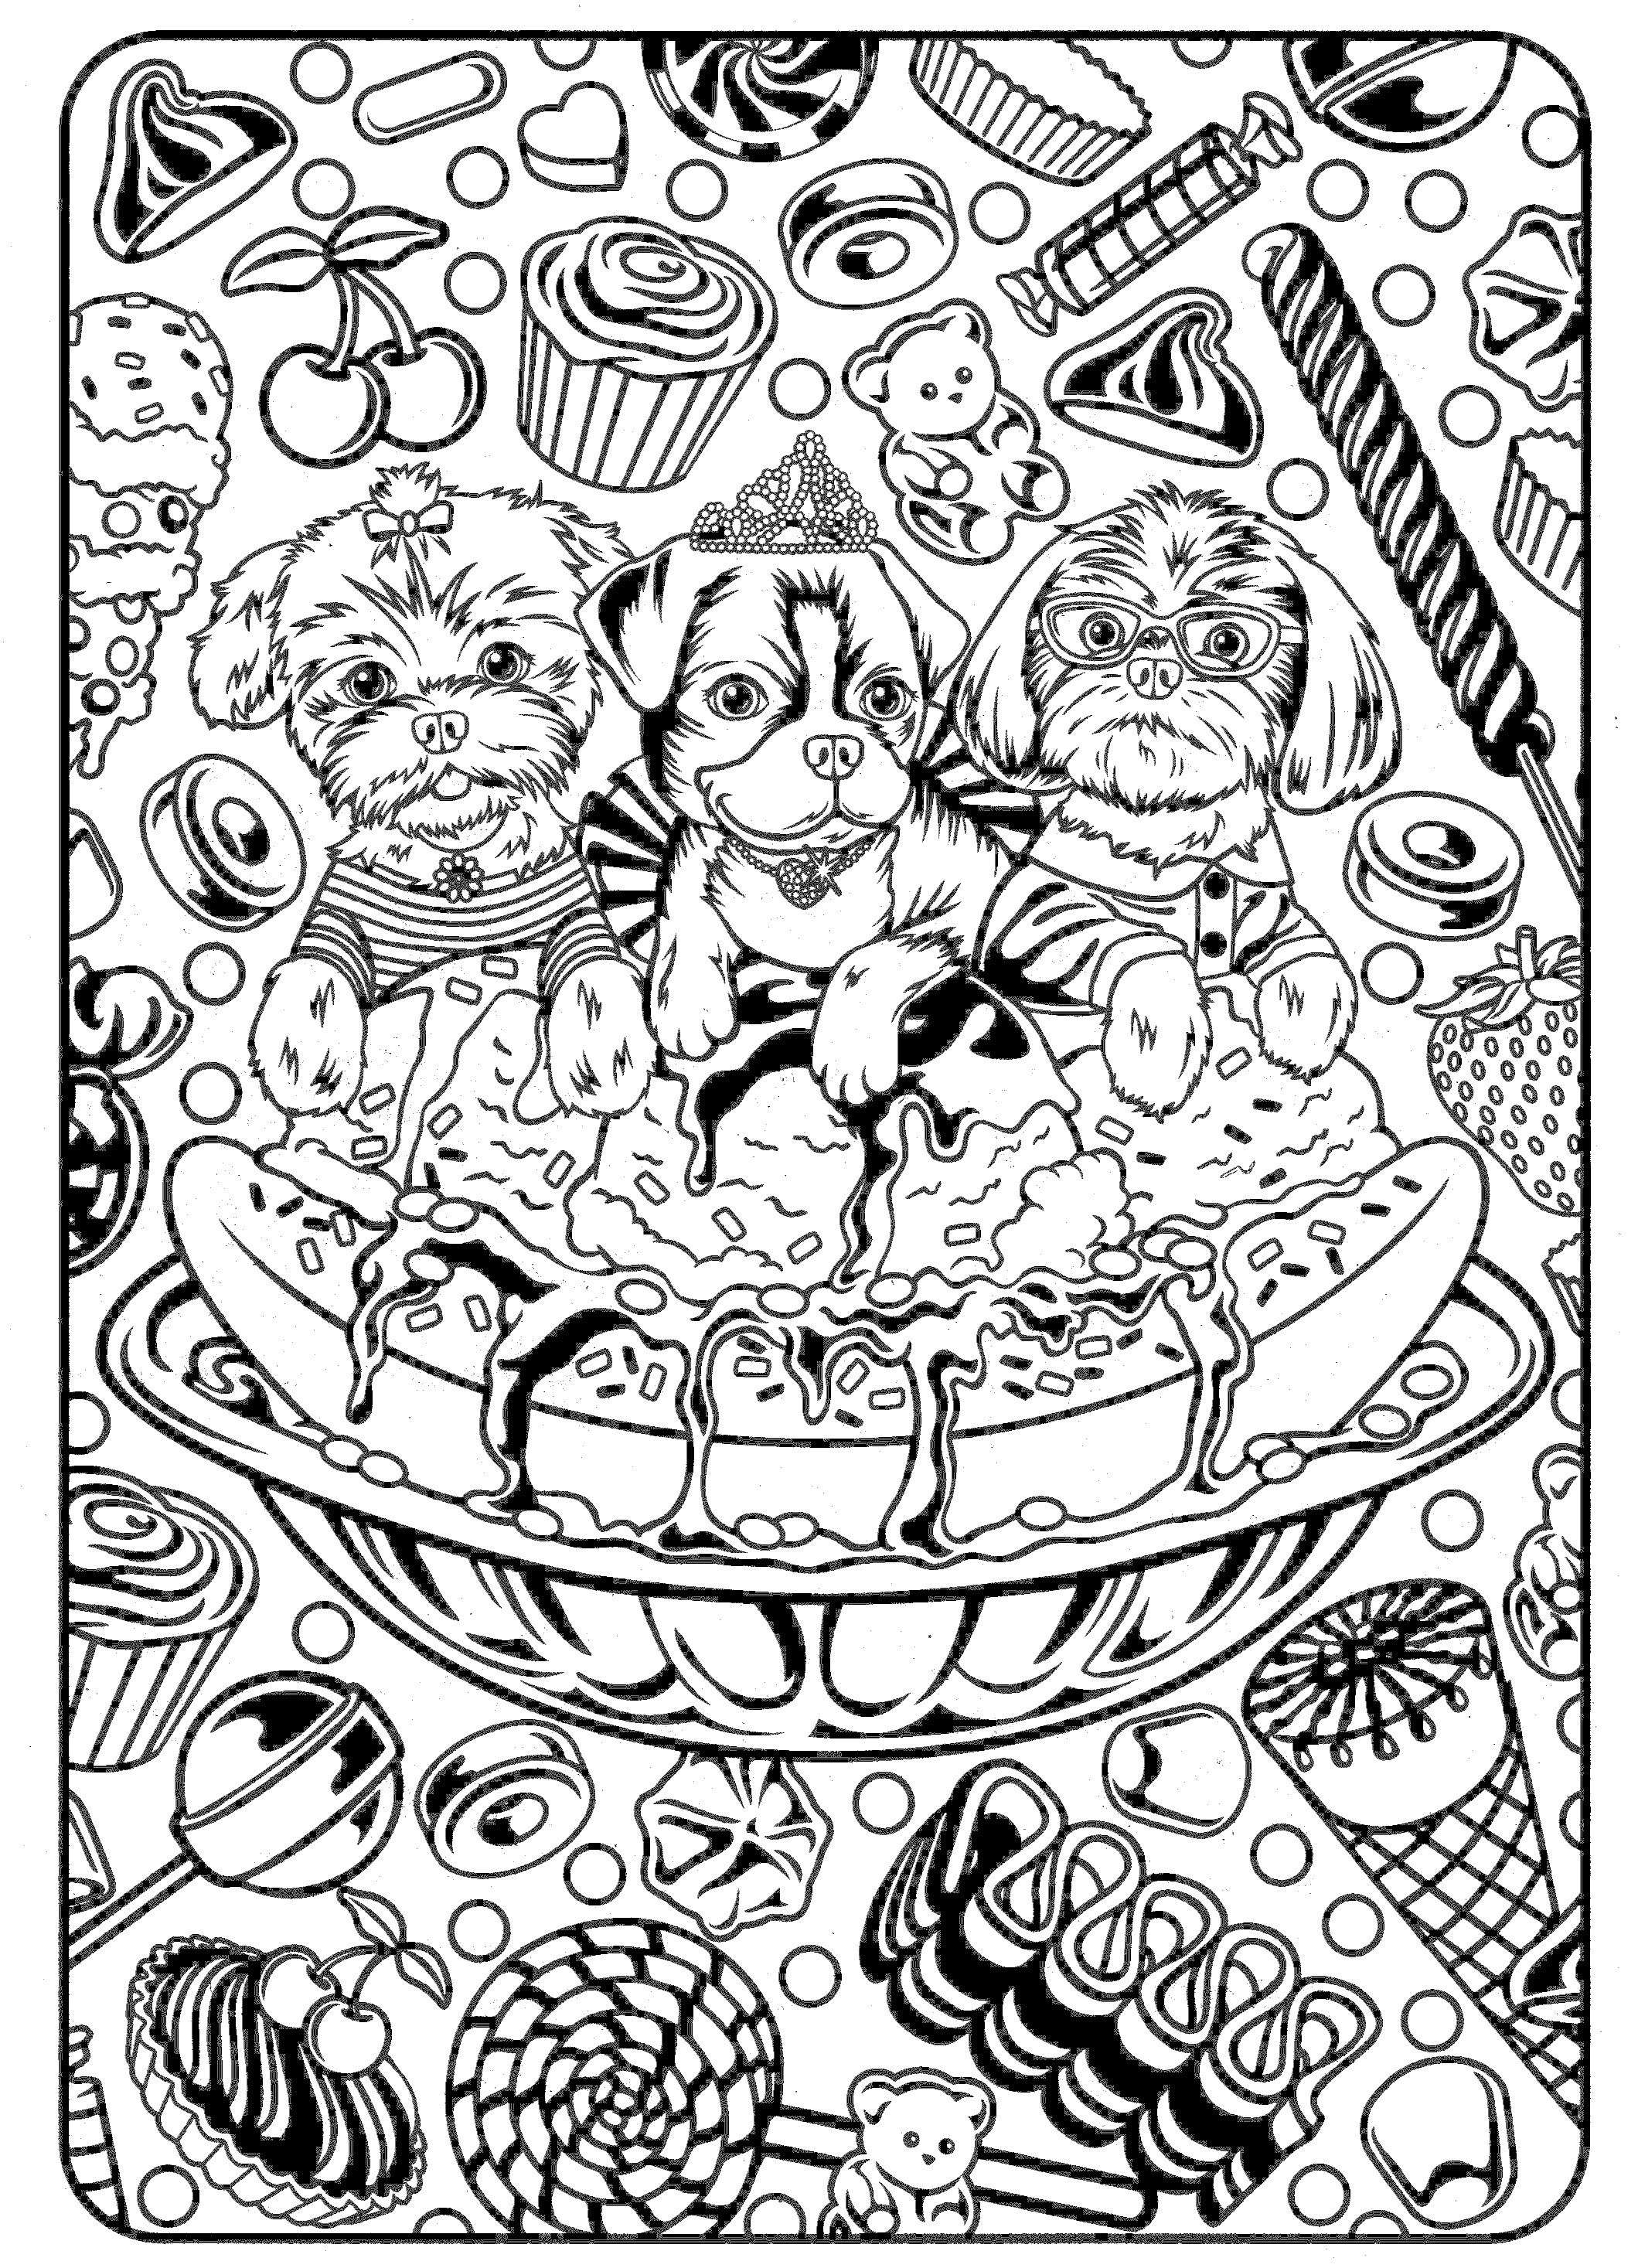 Wellie Wishers Coloring Pages Collection | Free Coloring ...